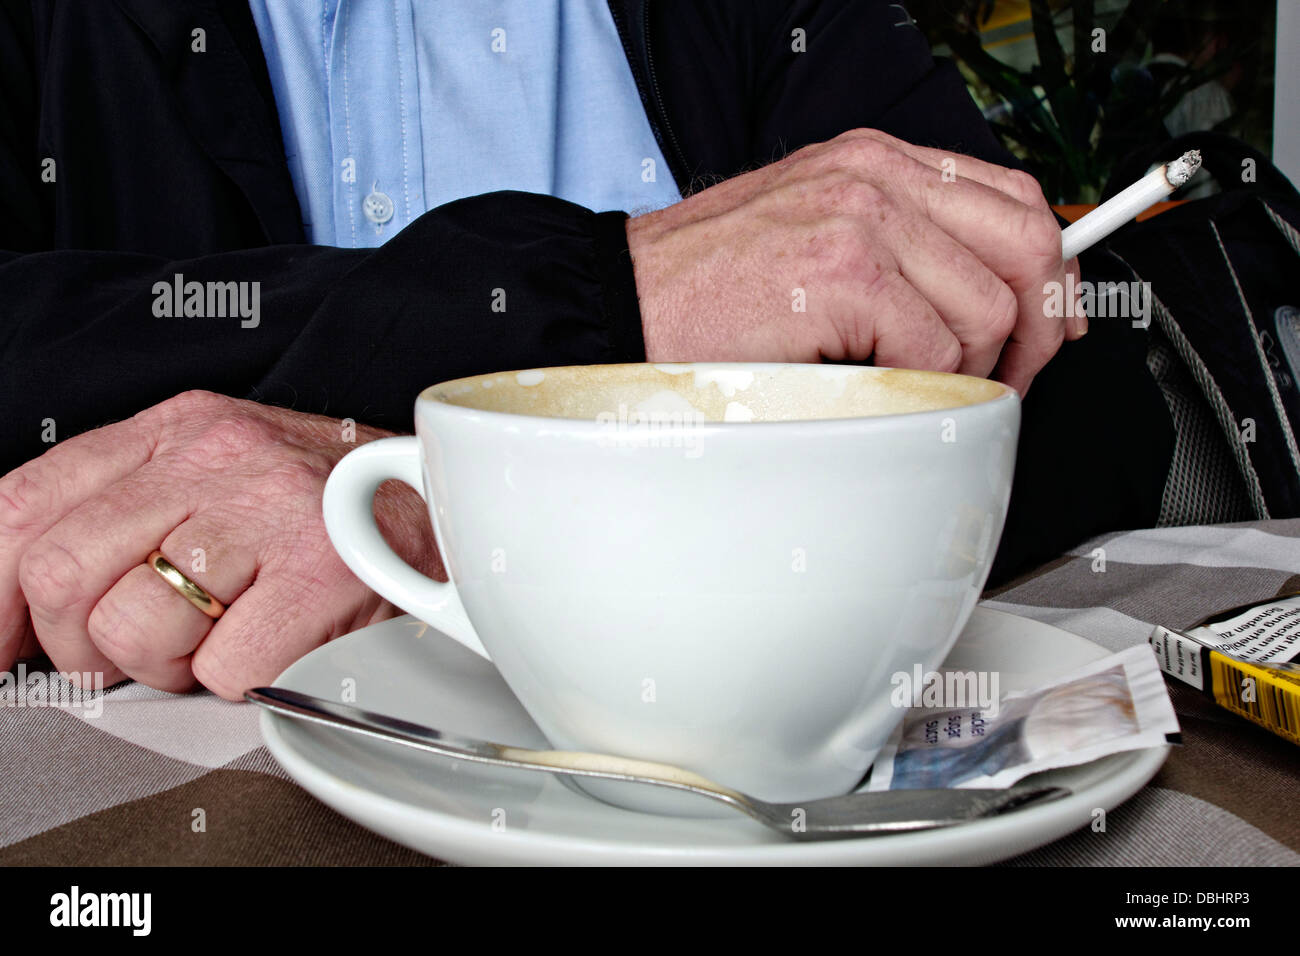 Man holding Cigarette with  Coffee cup in foreground - Stock Image